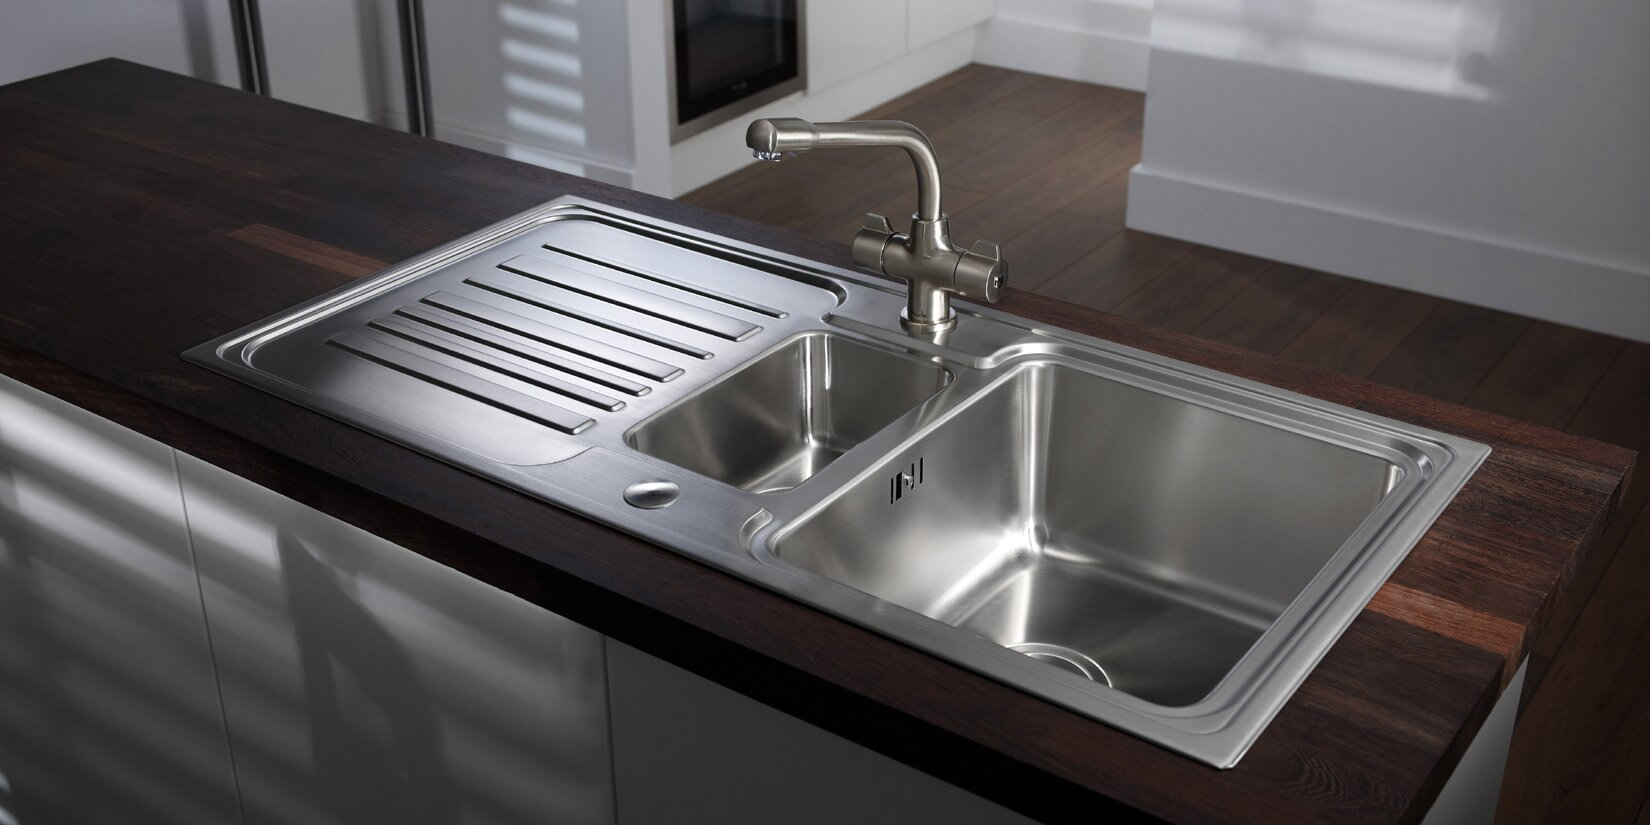 Cozy Kitchen Sinks Stainless Steel for Traditional Kitchen Design: Kitchen Sinks Stainless Steel | Kitchen Sink Stainless Steel | Stainless Steel Farmhouse Kitchen Sink